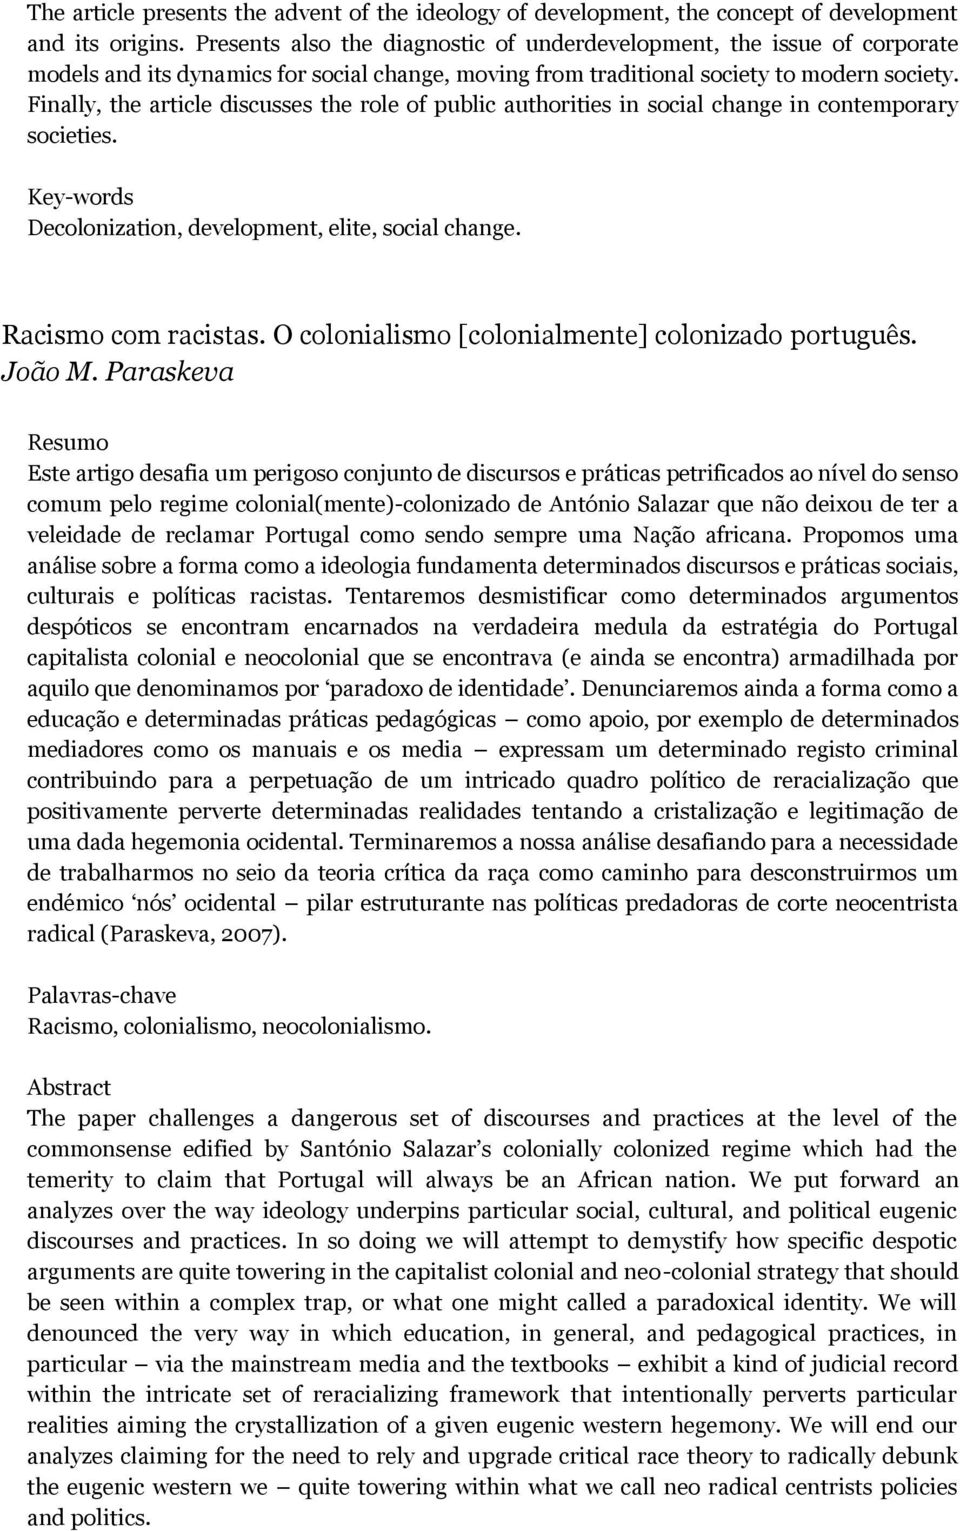 Finally, the article discusses the role of public authorities in social change in contemporary societies. Decolonization, development, elite, social change. Racismo com racistas.